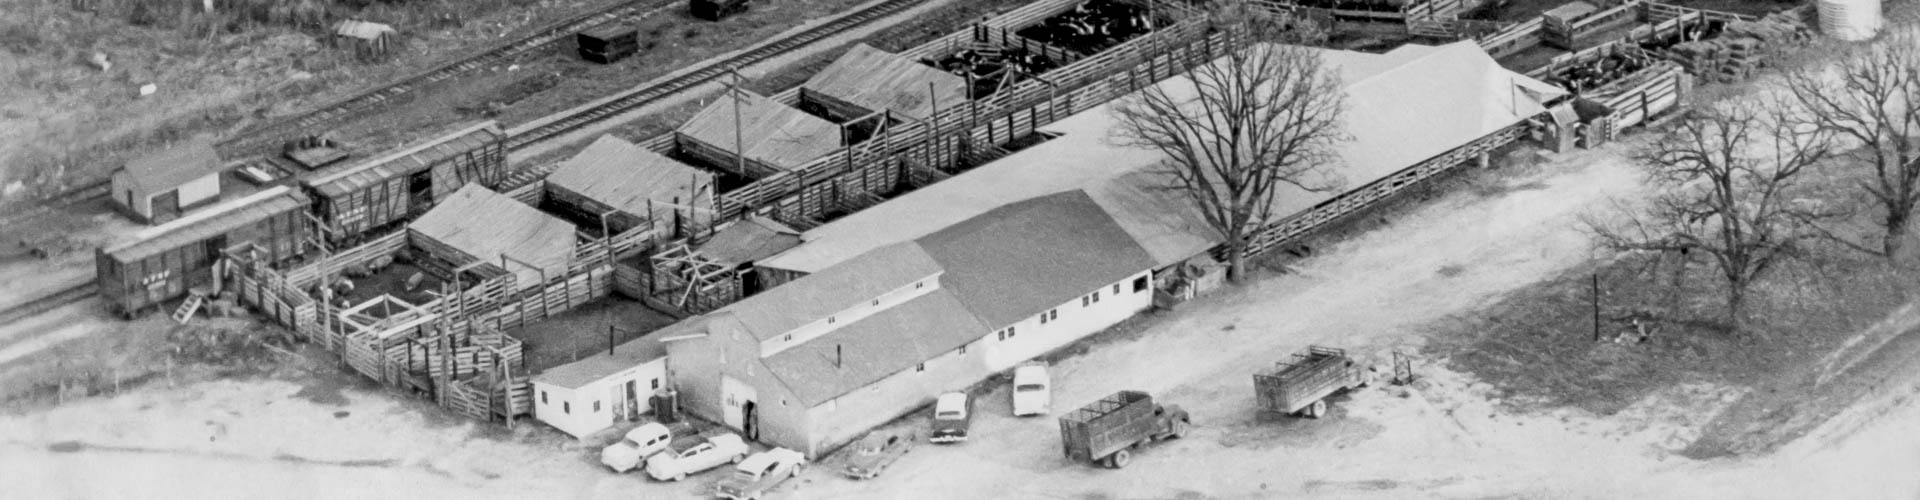 Oxford Sale Barn Oxford Iowa Gallery Aerial Photography copyright 2020 Jonathan David Sabin Infinity Photographic Productions All Rights Reserved